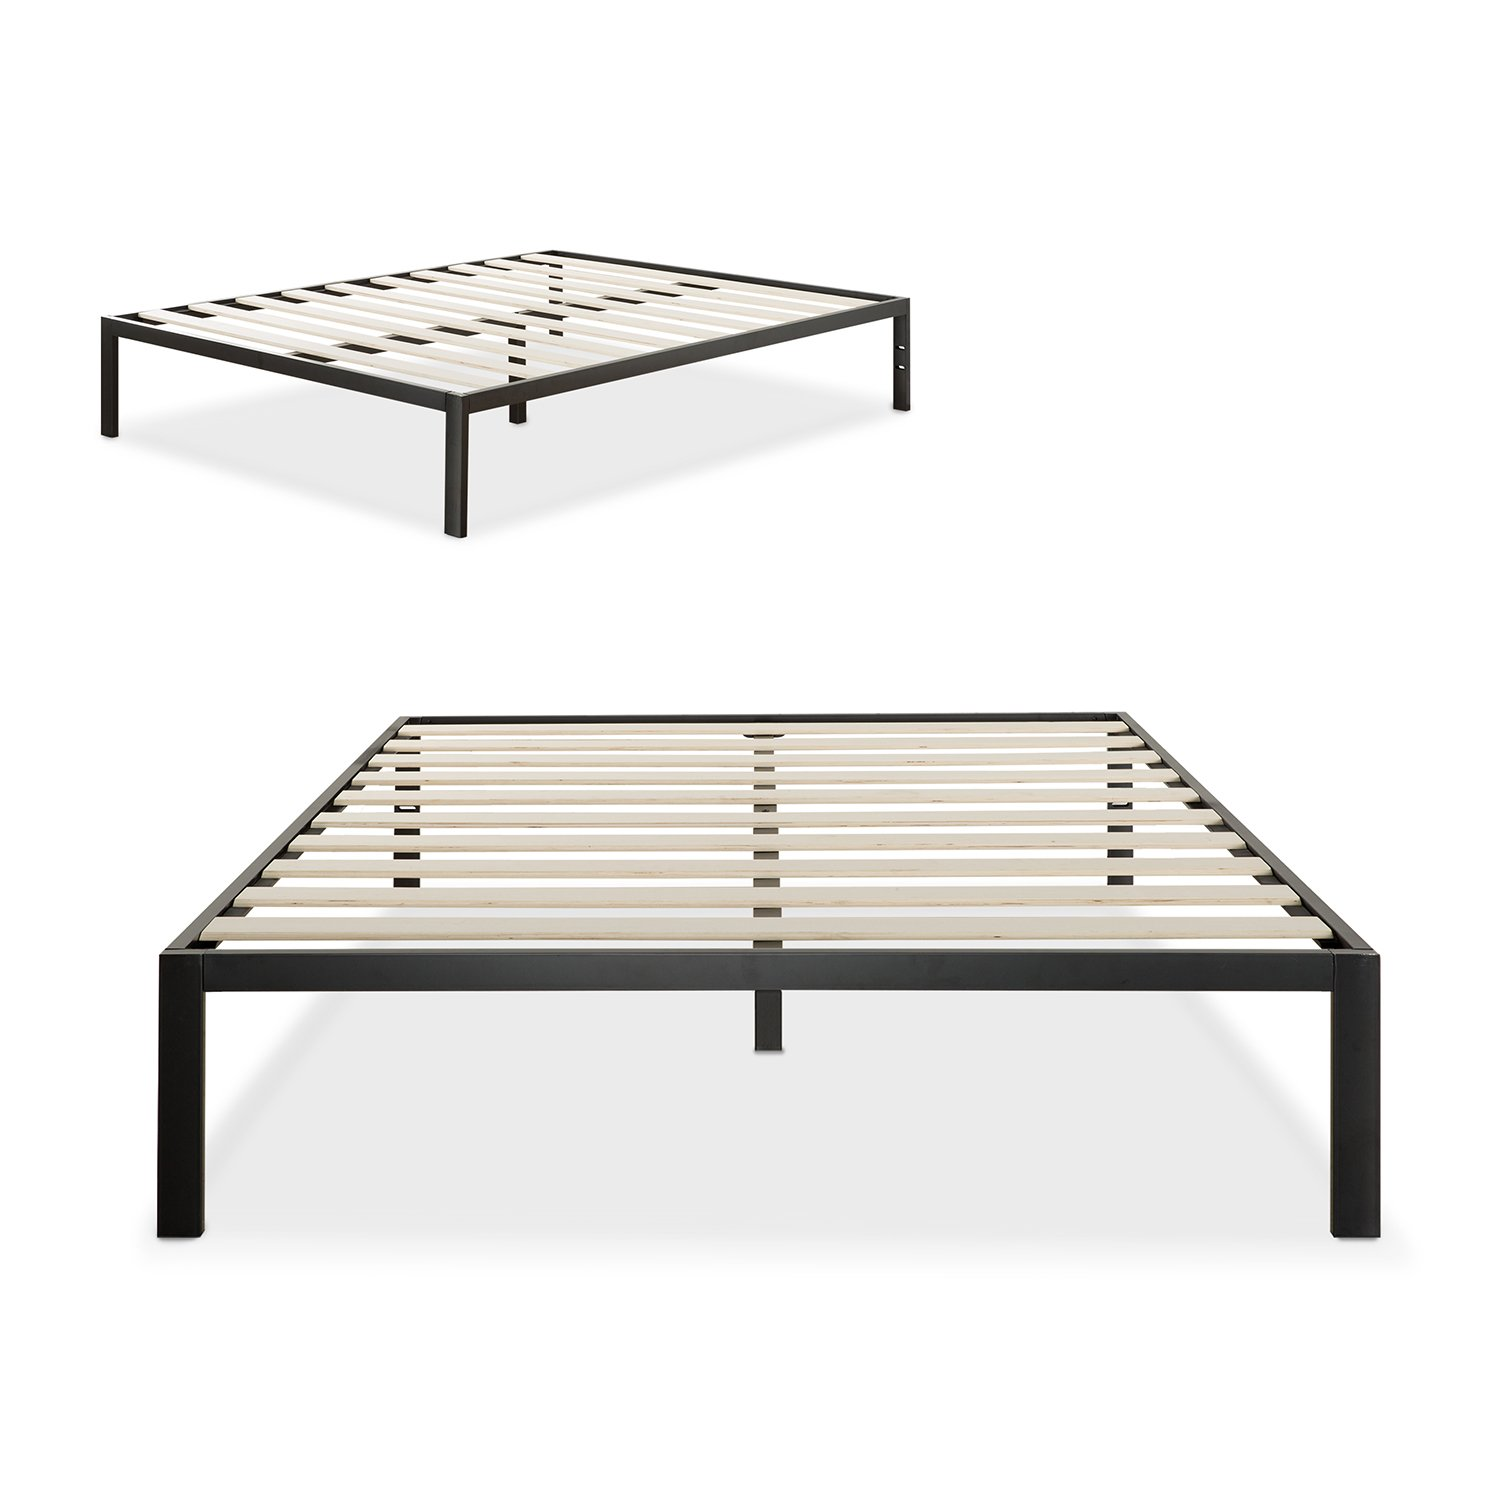 amazoncom zinus modern studio 14 inch platform 1500 metal bed frame mattress foundation no boxspring needed wooden slat support black - Frame Bed